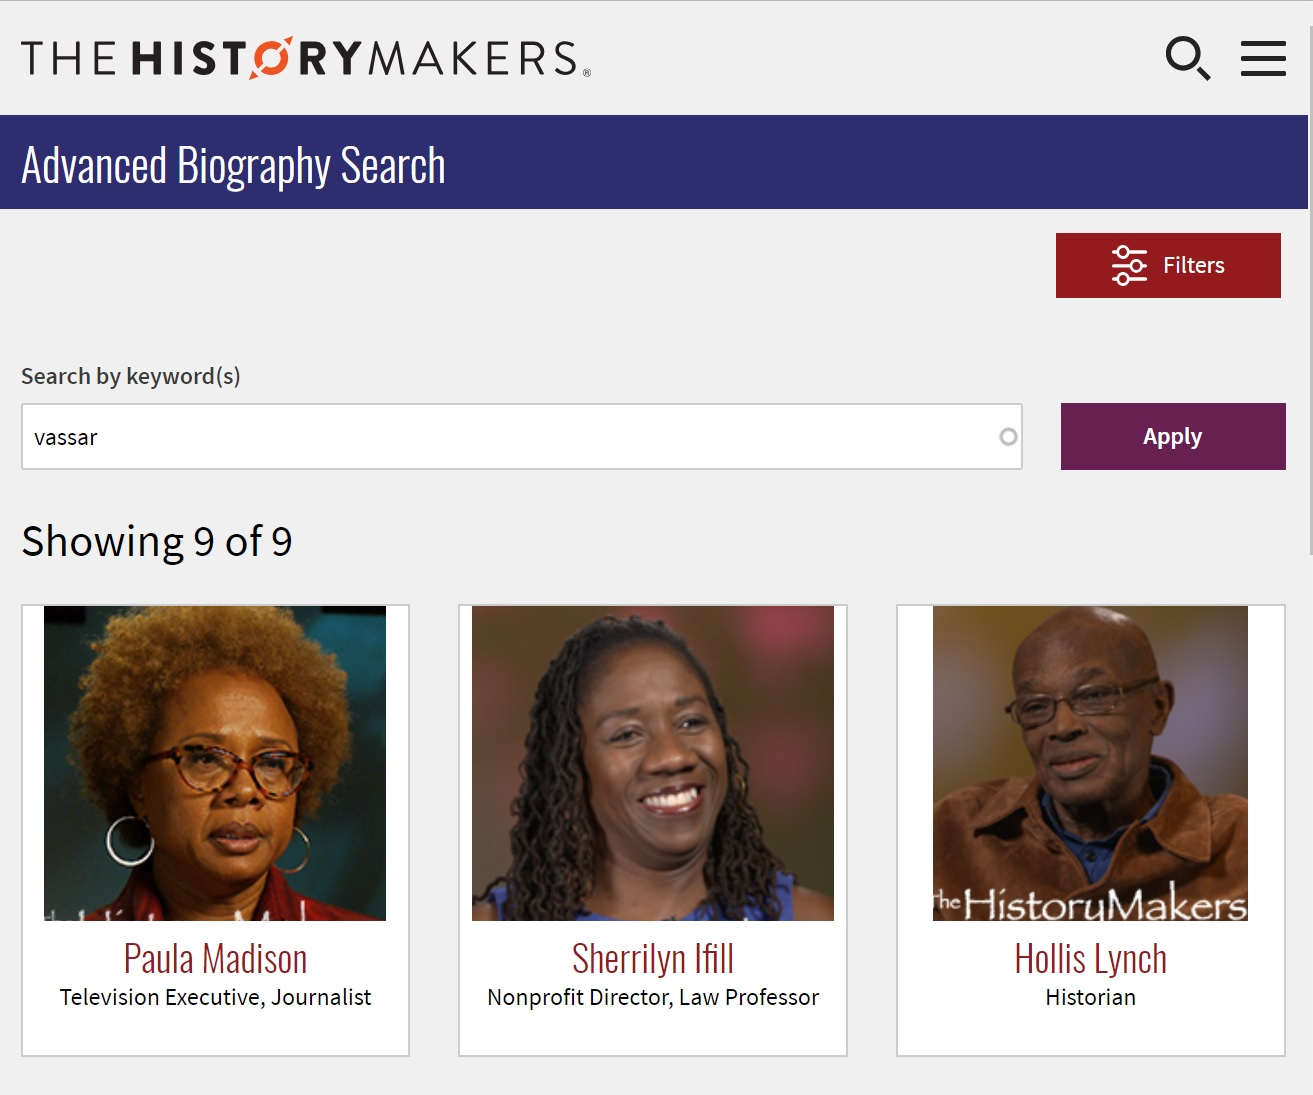 HistoryMakers.org